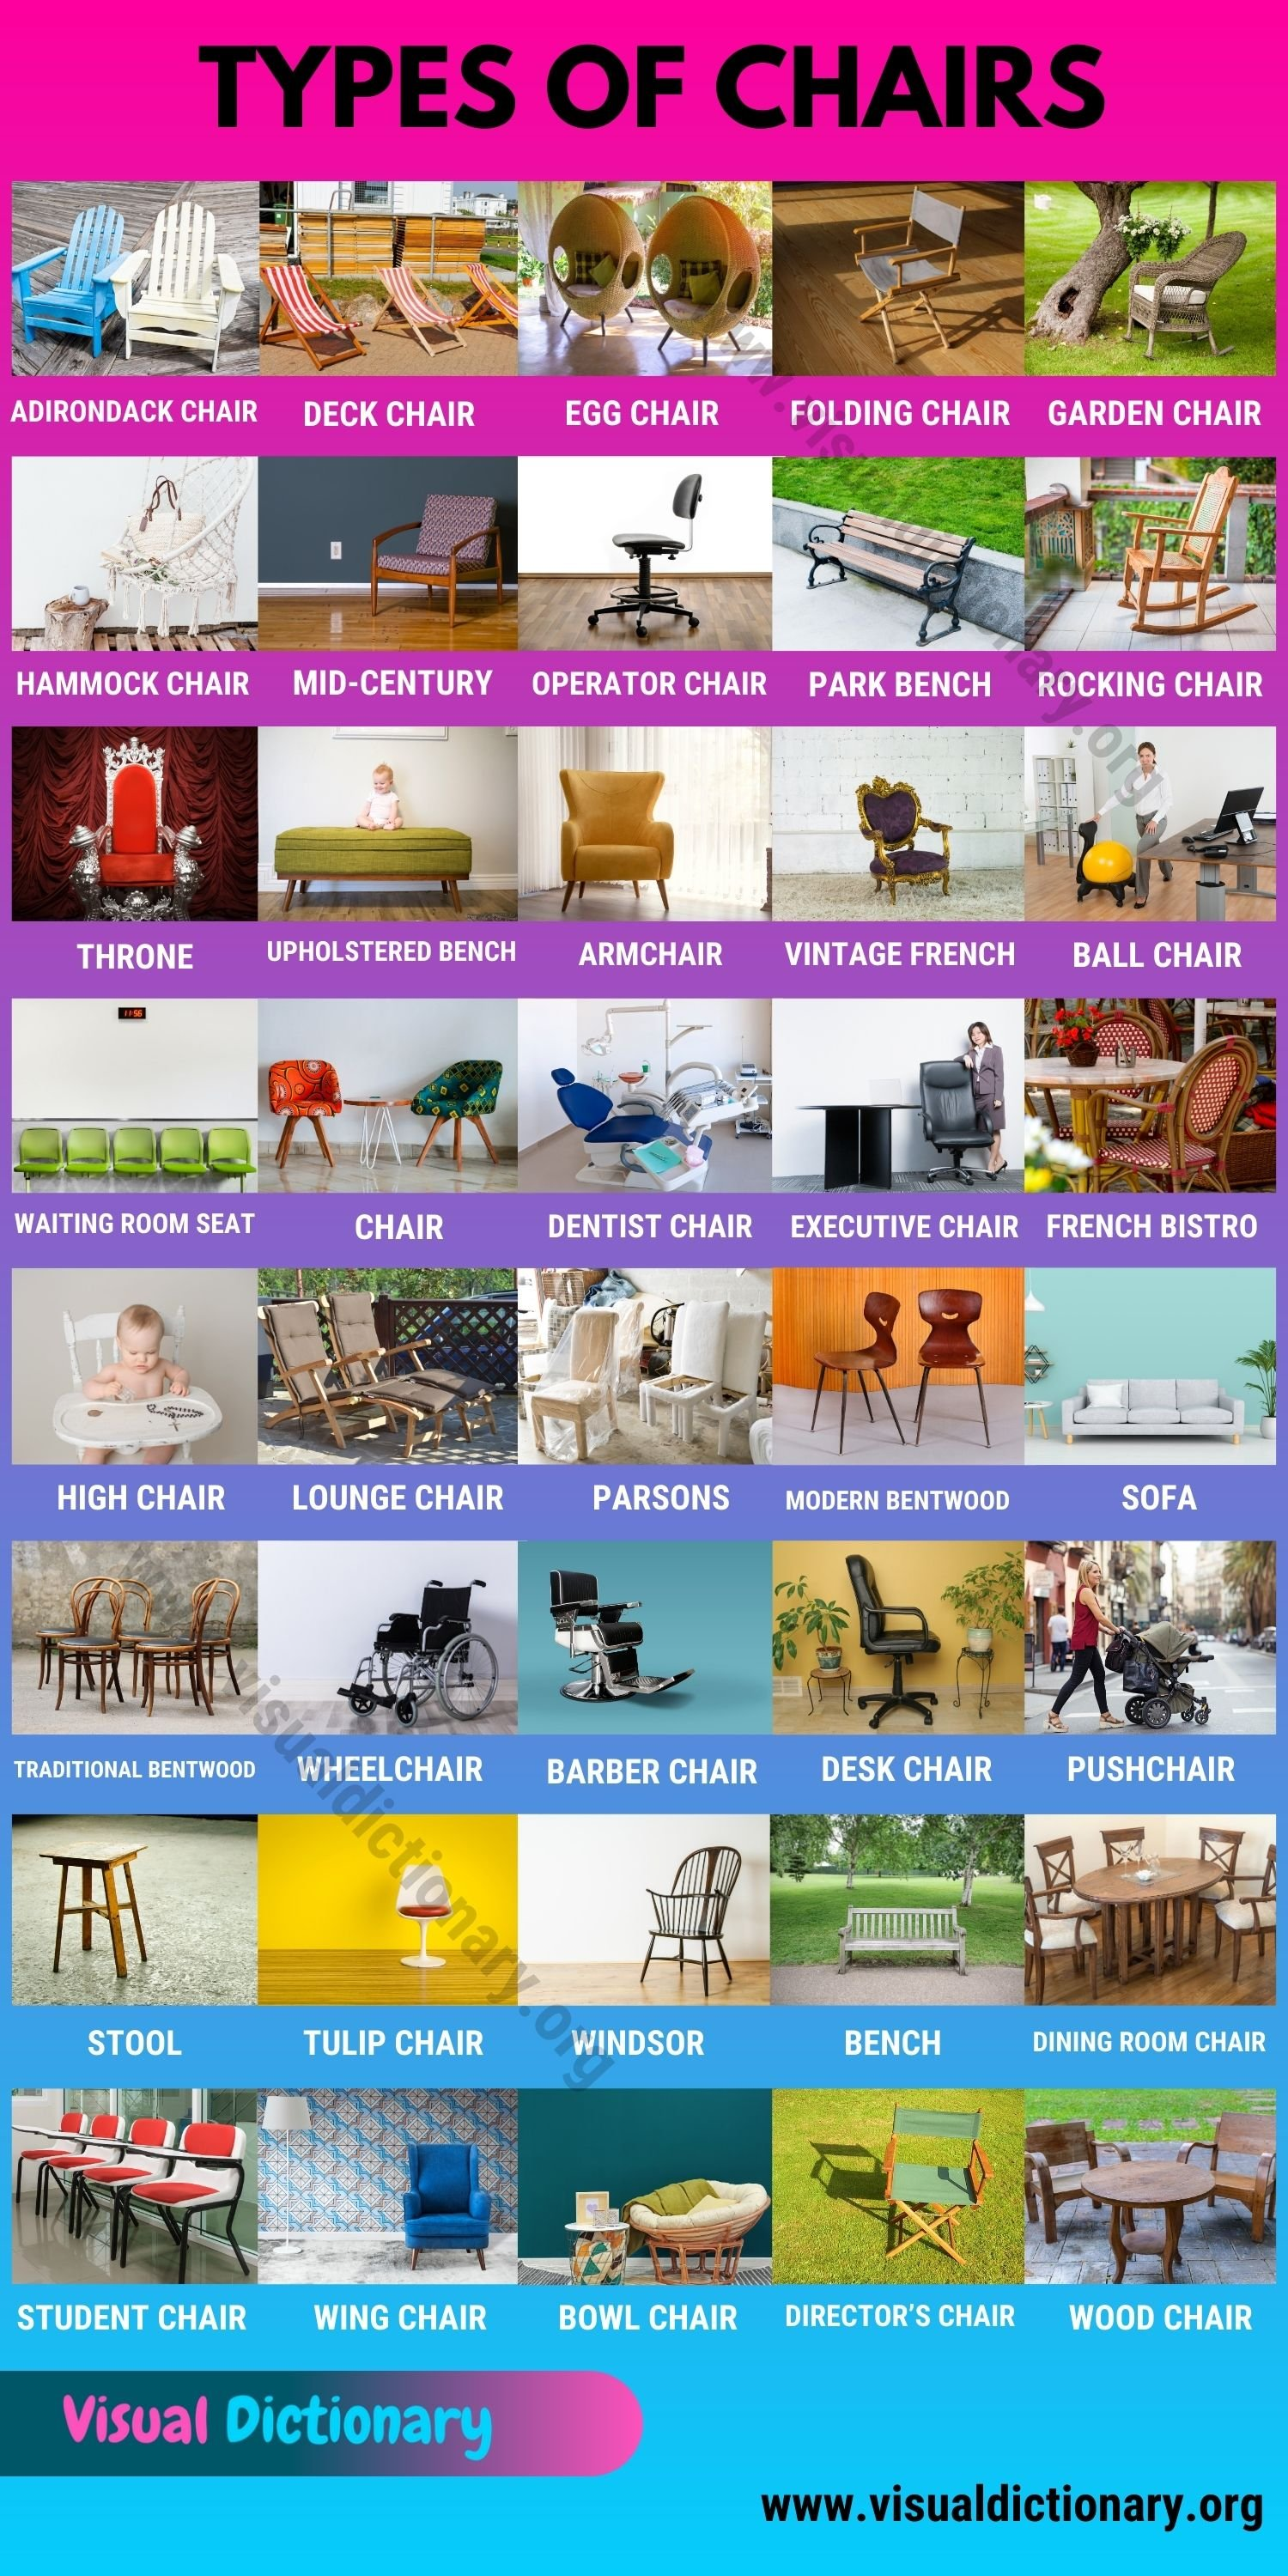 Types of Chairs